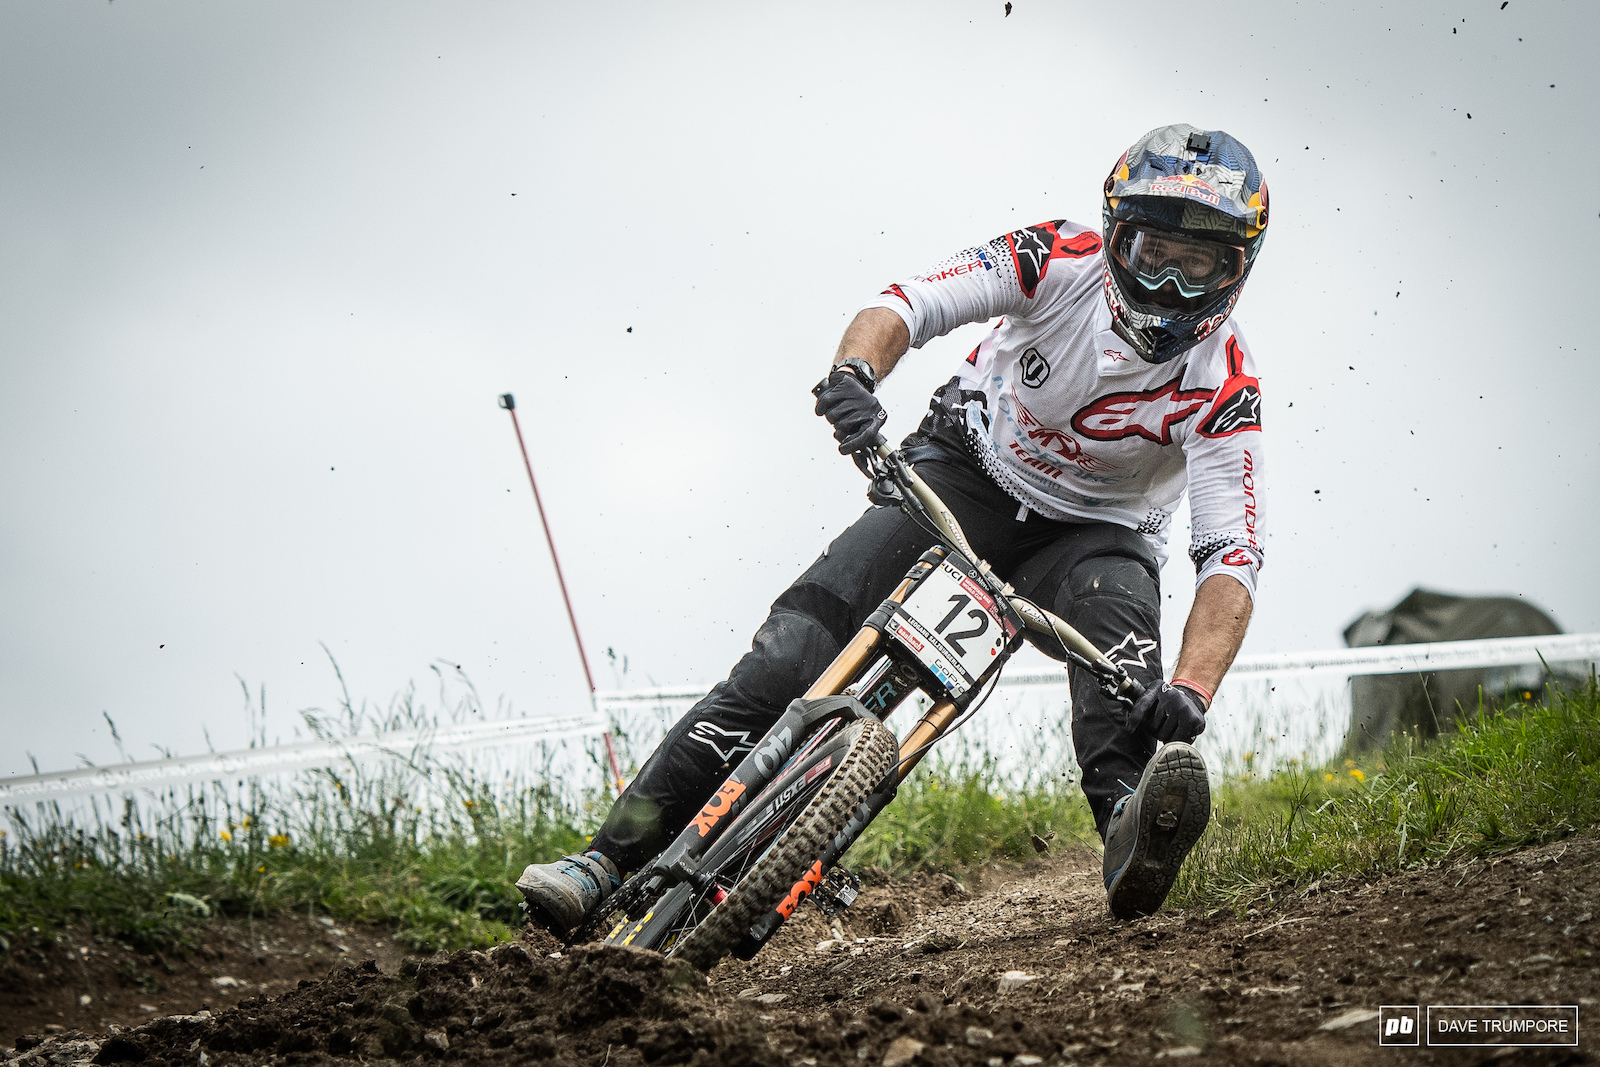 Foot out flat out and just 0.14 seconds back in Second Place for Brook Macdonald today in Leogang.